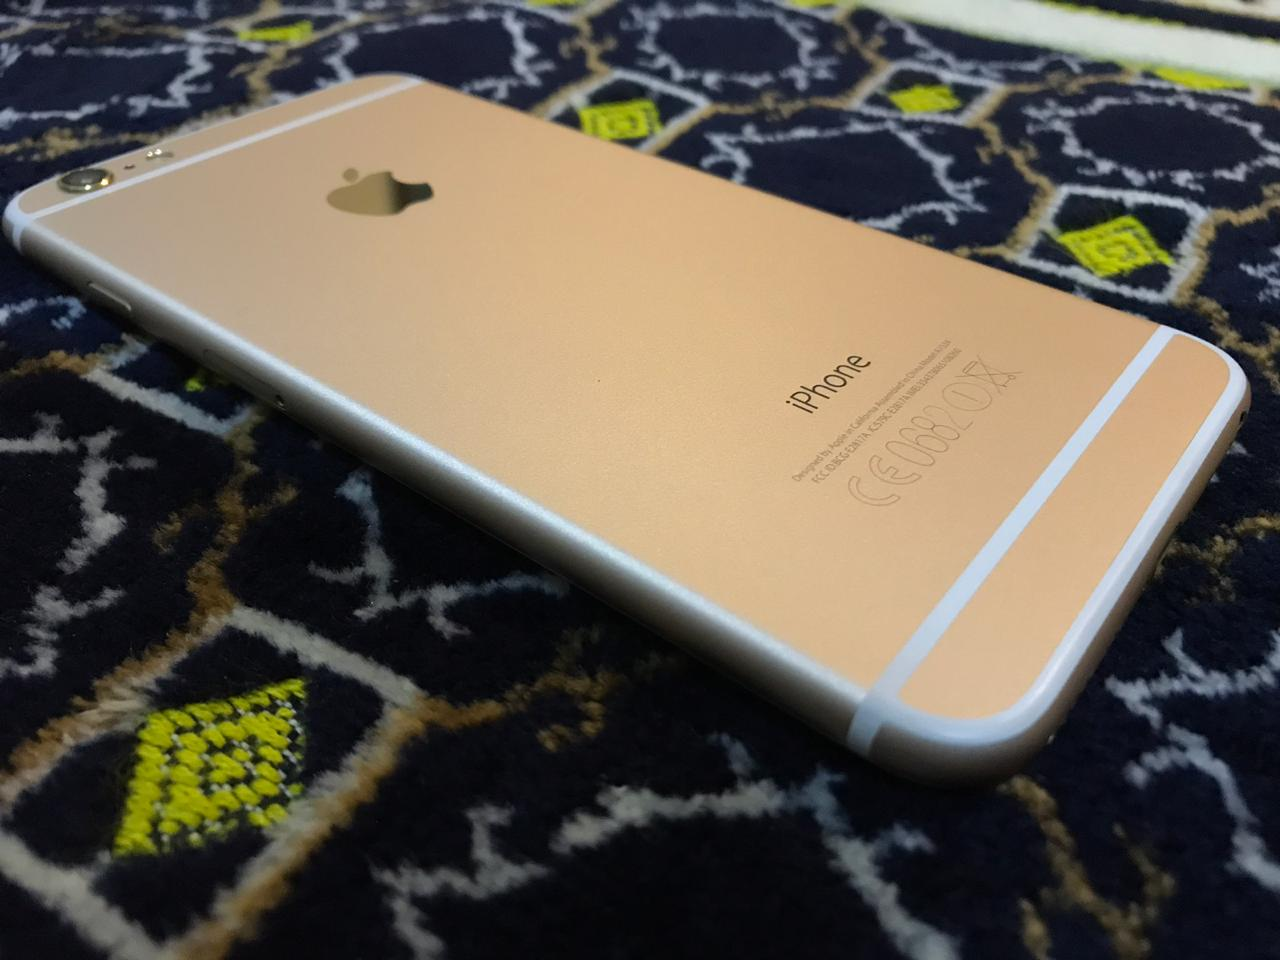 Apple iPhone 6 Plus 16gb Gold just Like Zero 10/10 IMEI Match Complete Accessories - photo 3